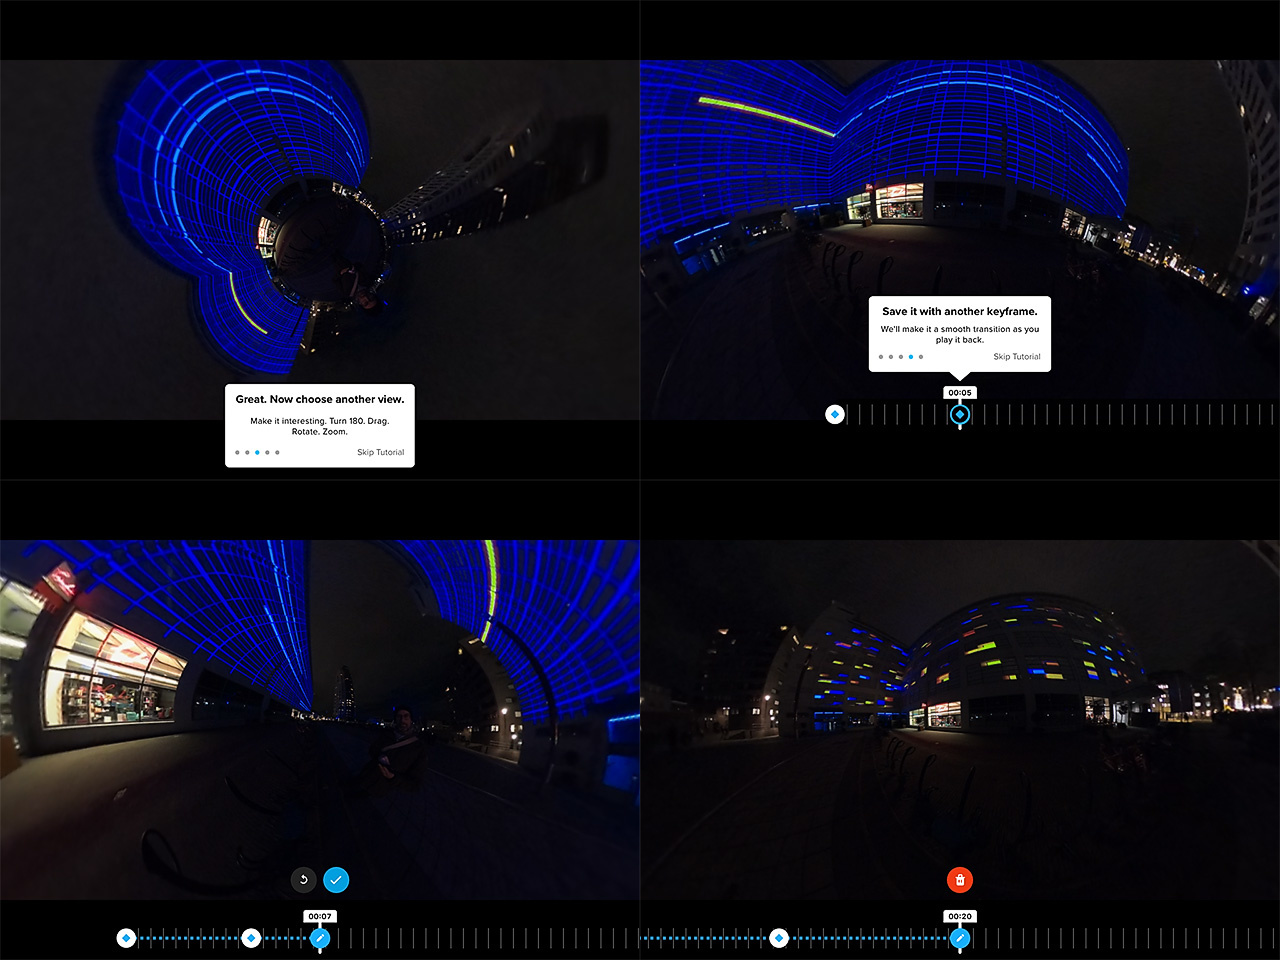 Editing the 360° footage is easy and fun. A few screenshots may give an idea, but you have to see it yourself.